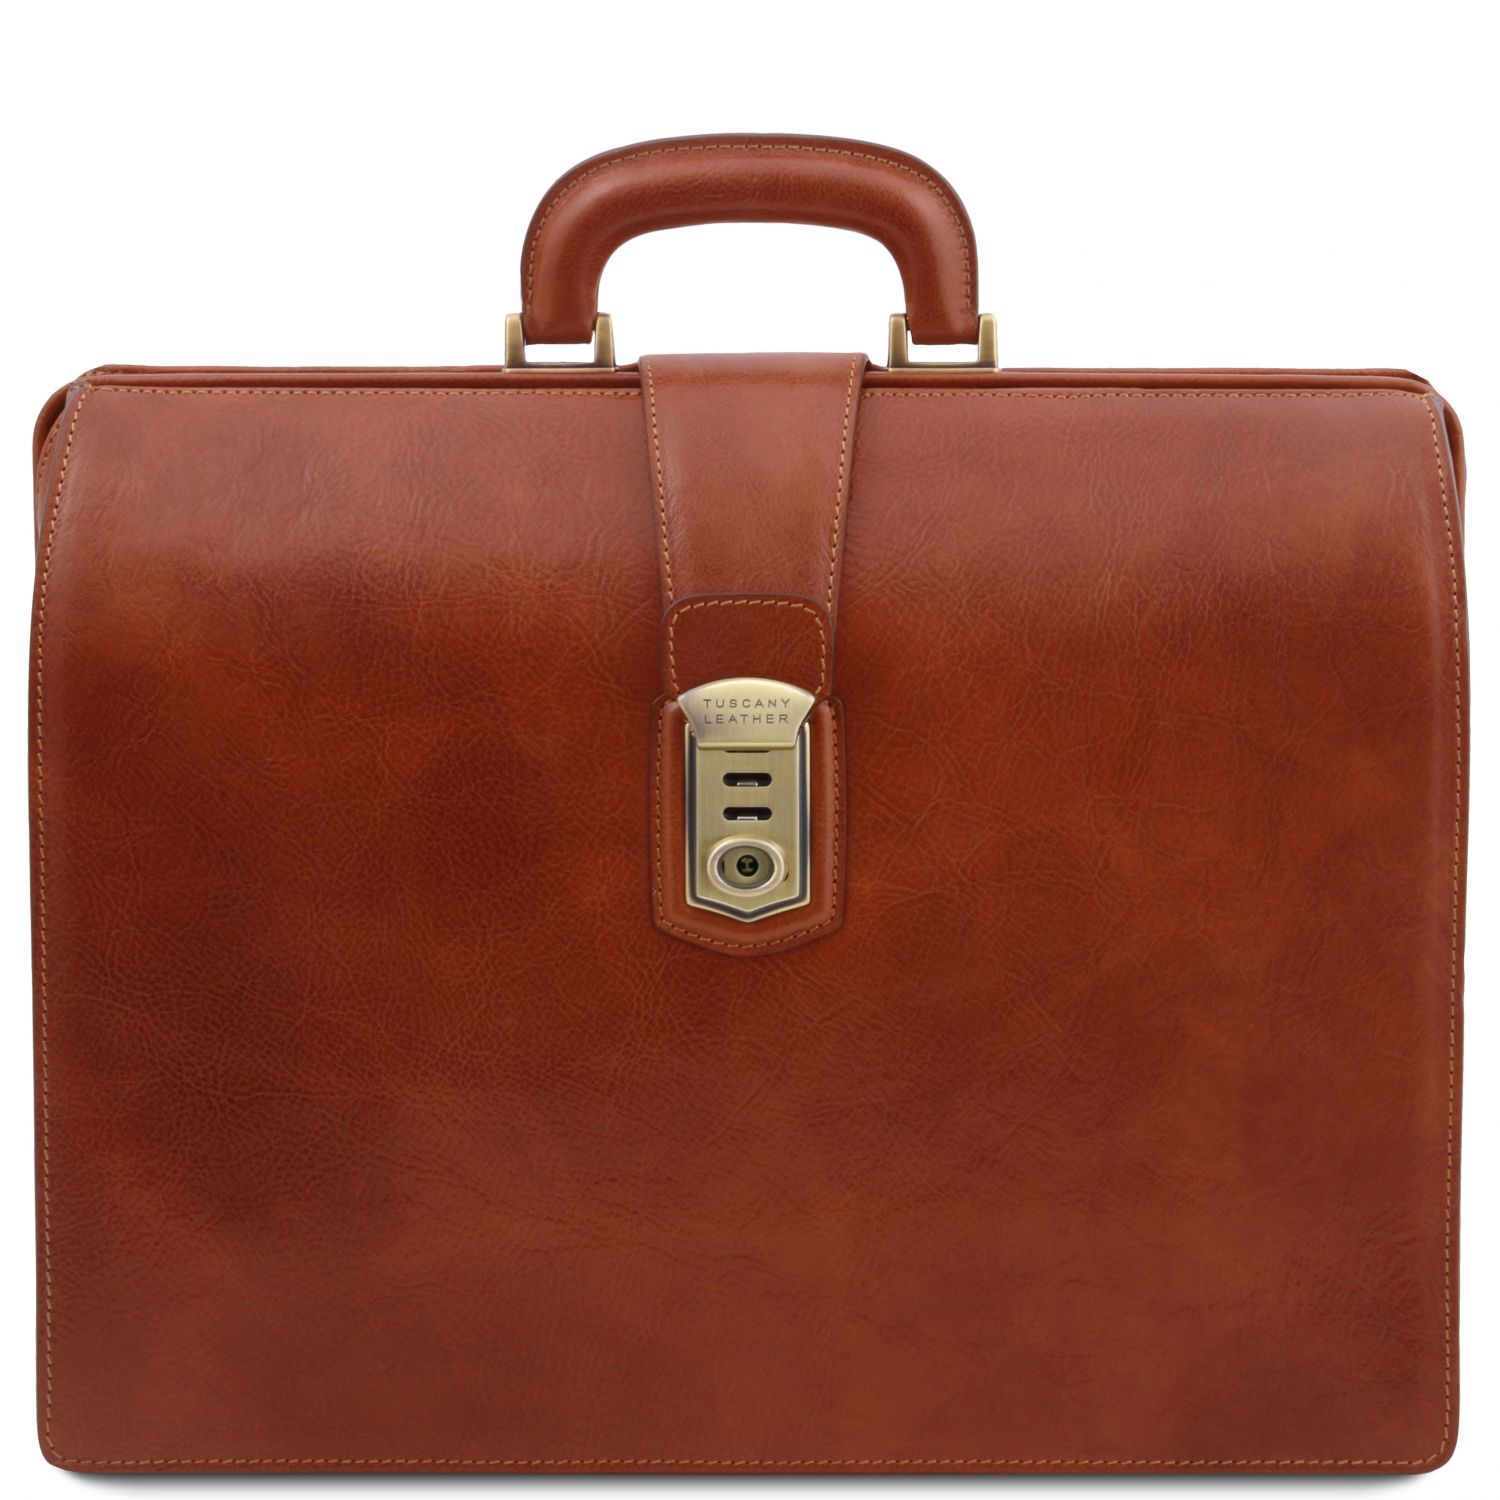 Canova - Leather Doctor bag briefcase 3 compartments (TL141826) - Doctor bags | DILUSSOBAGS